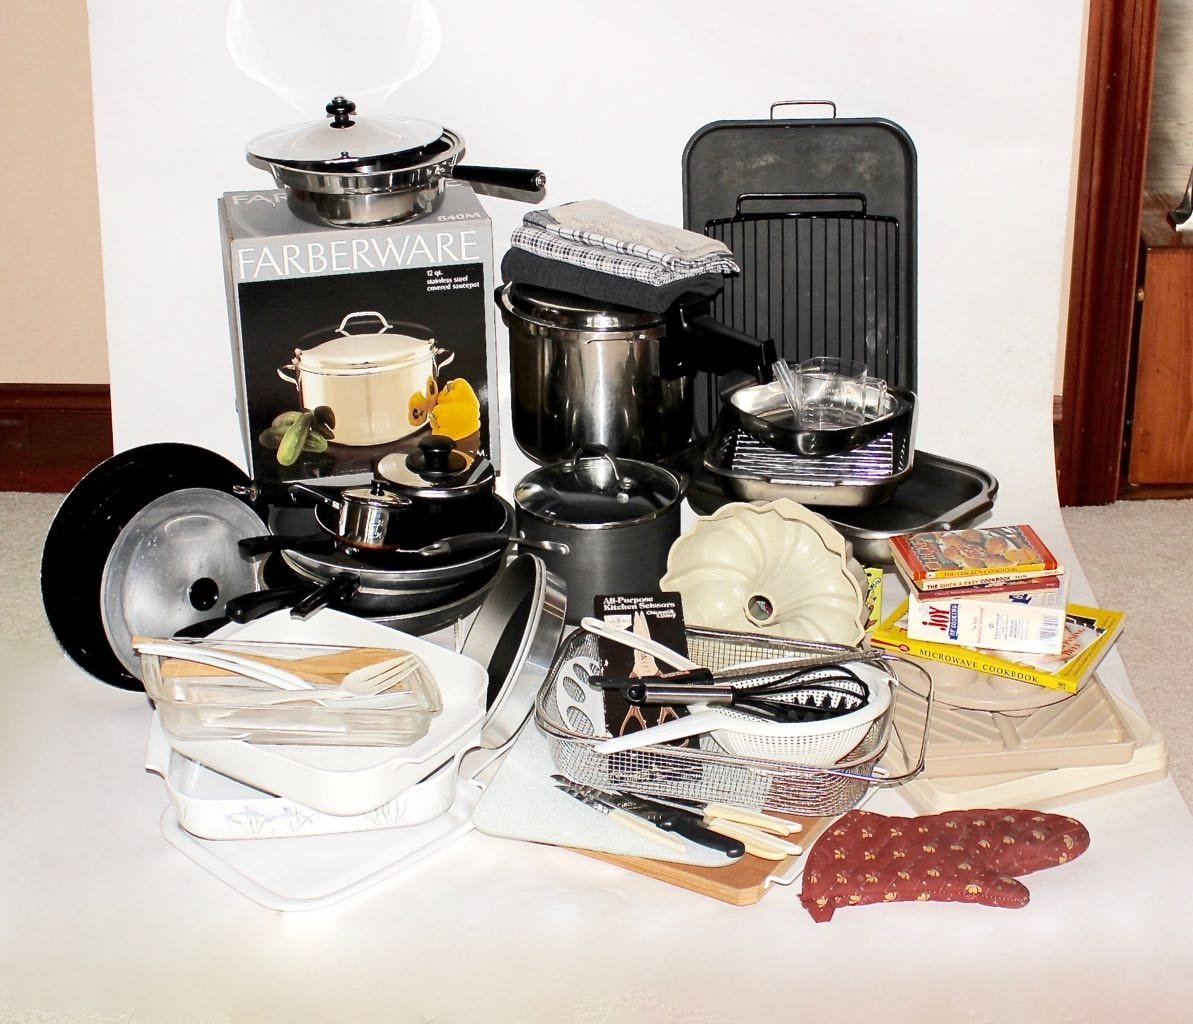 Large Assortment of Basic Kitchen Equipment & Tools